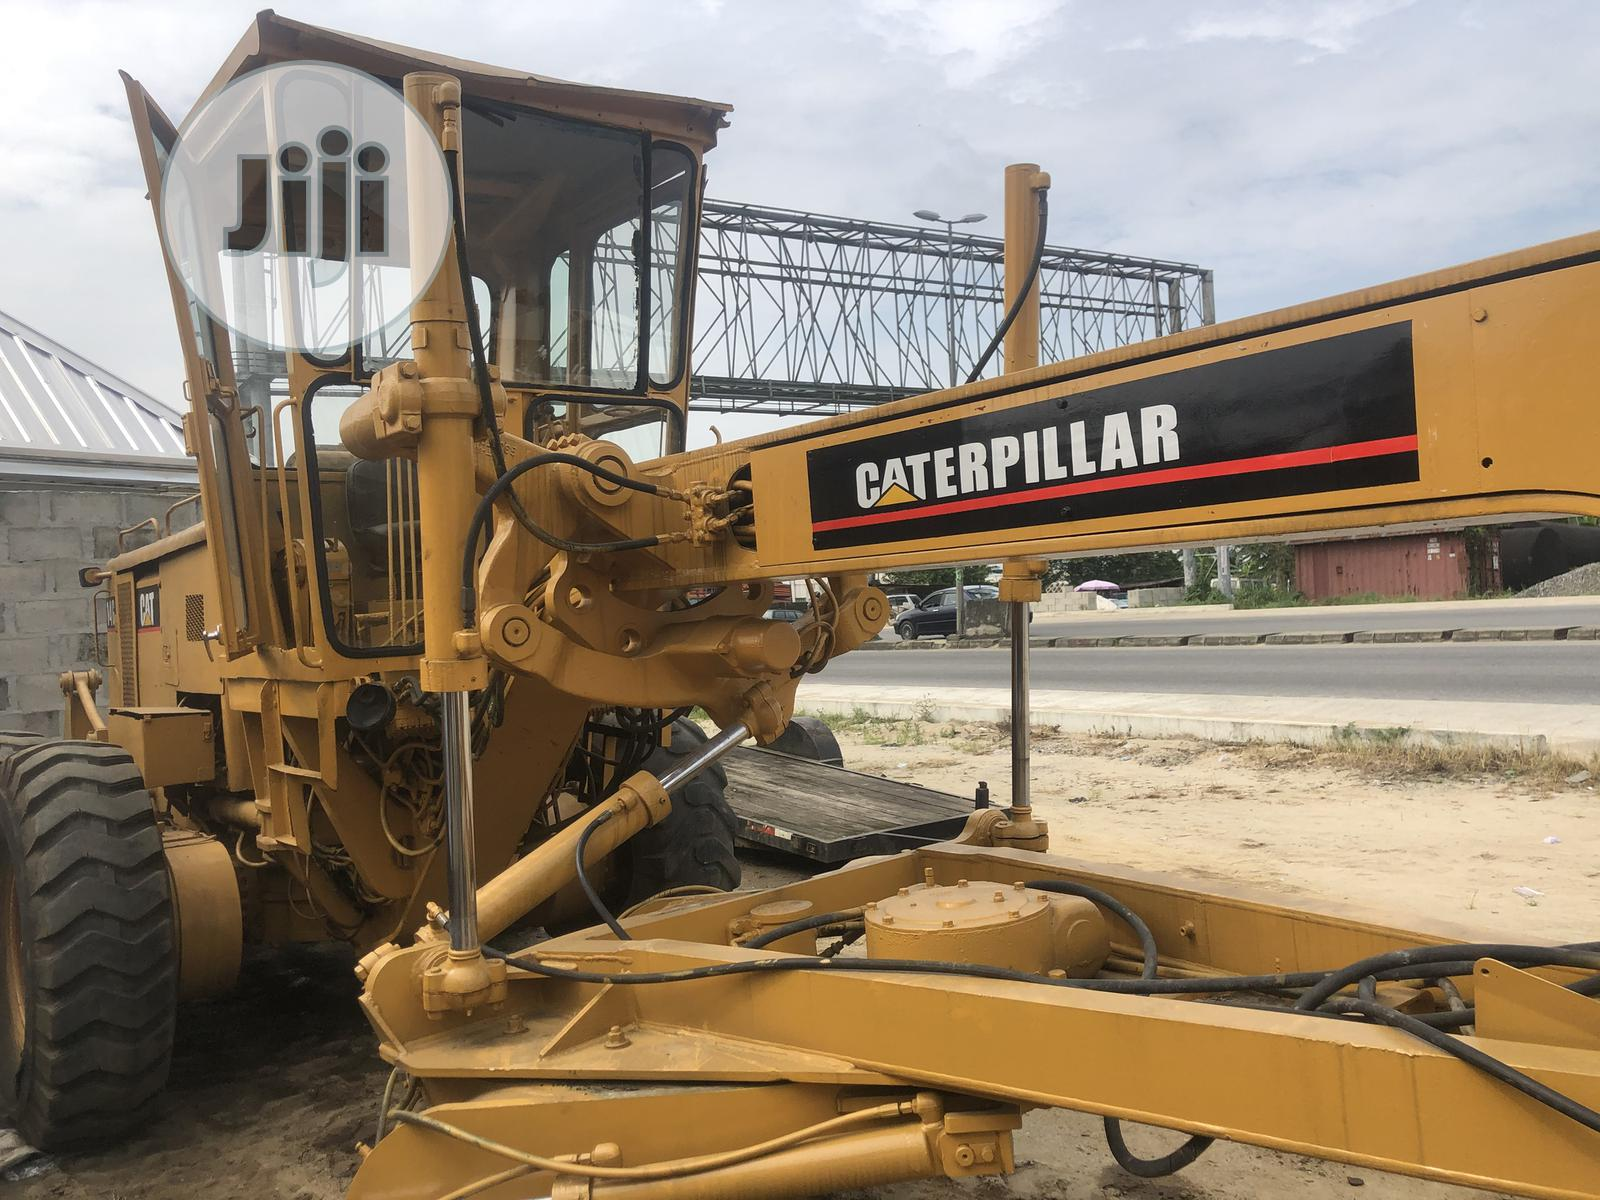 Archive: Clean CAT 14G Grader With Ripper for Sale